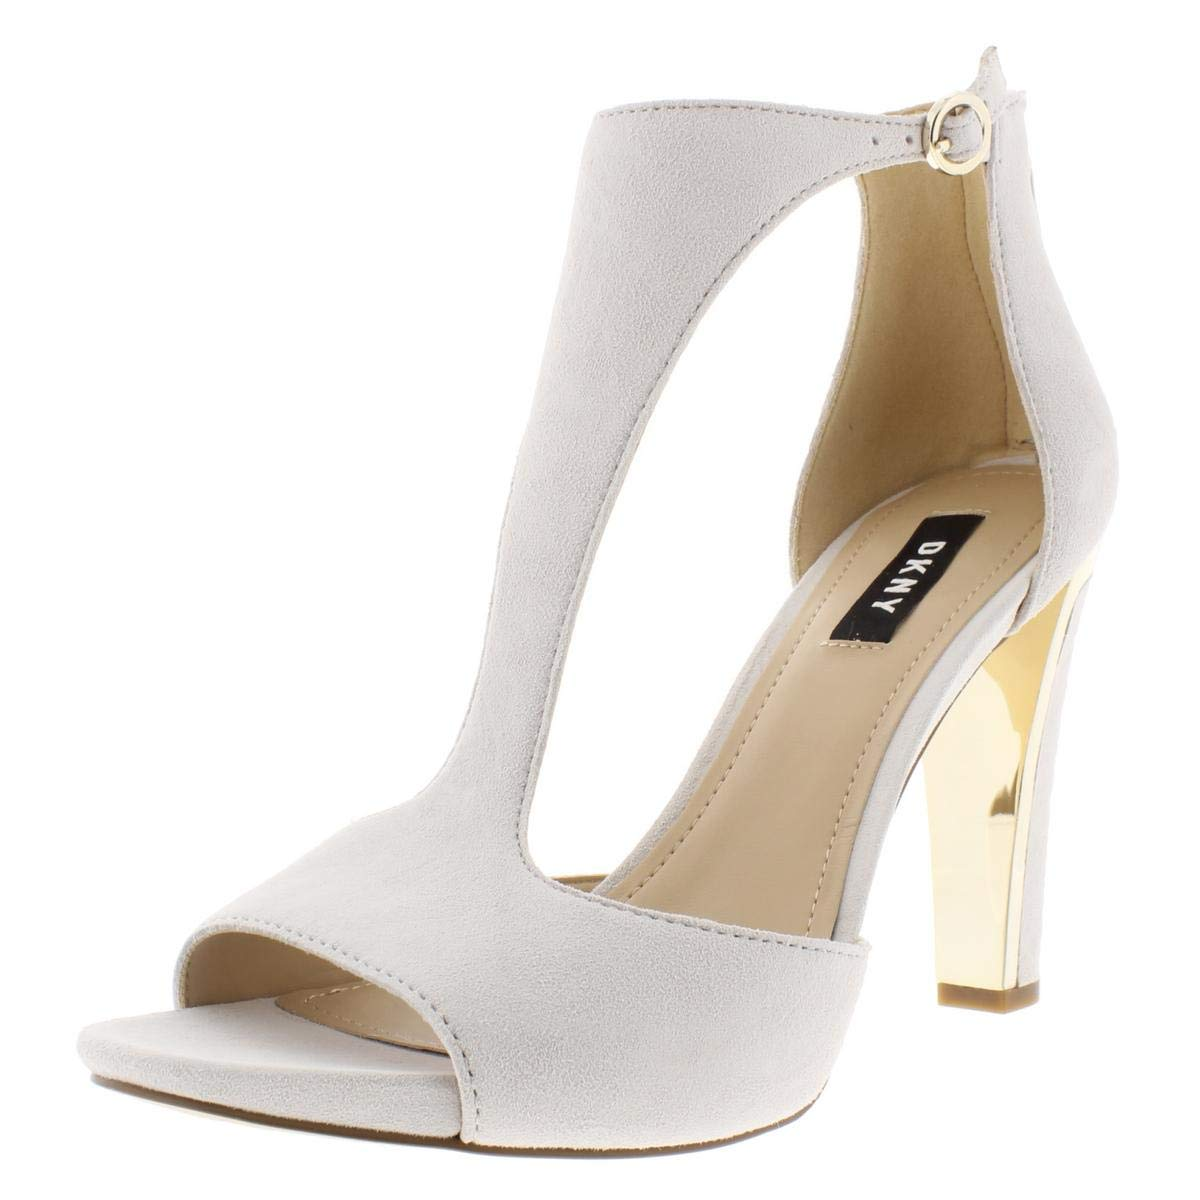 391c51681b4 Amazon.com | DKNY Womens Colby Suede Ankle Strap Heels Ivory 6.5 ...